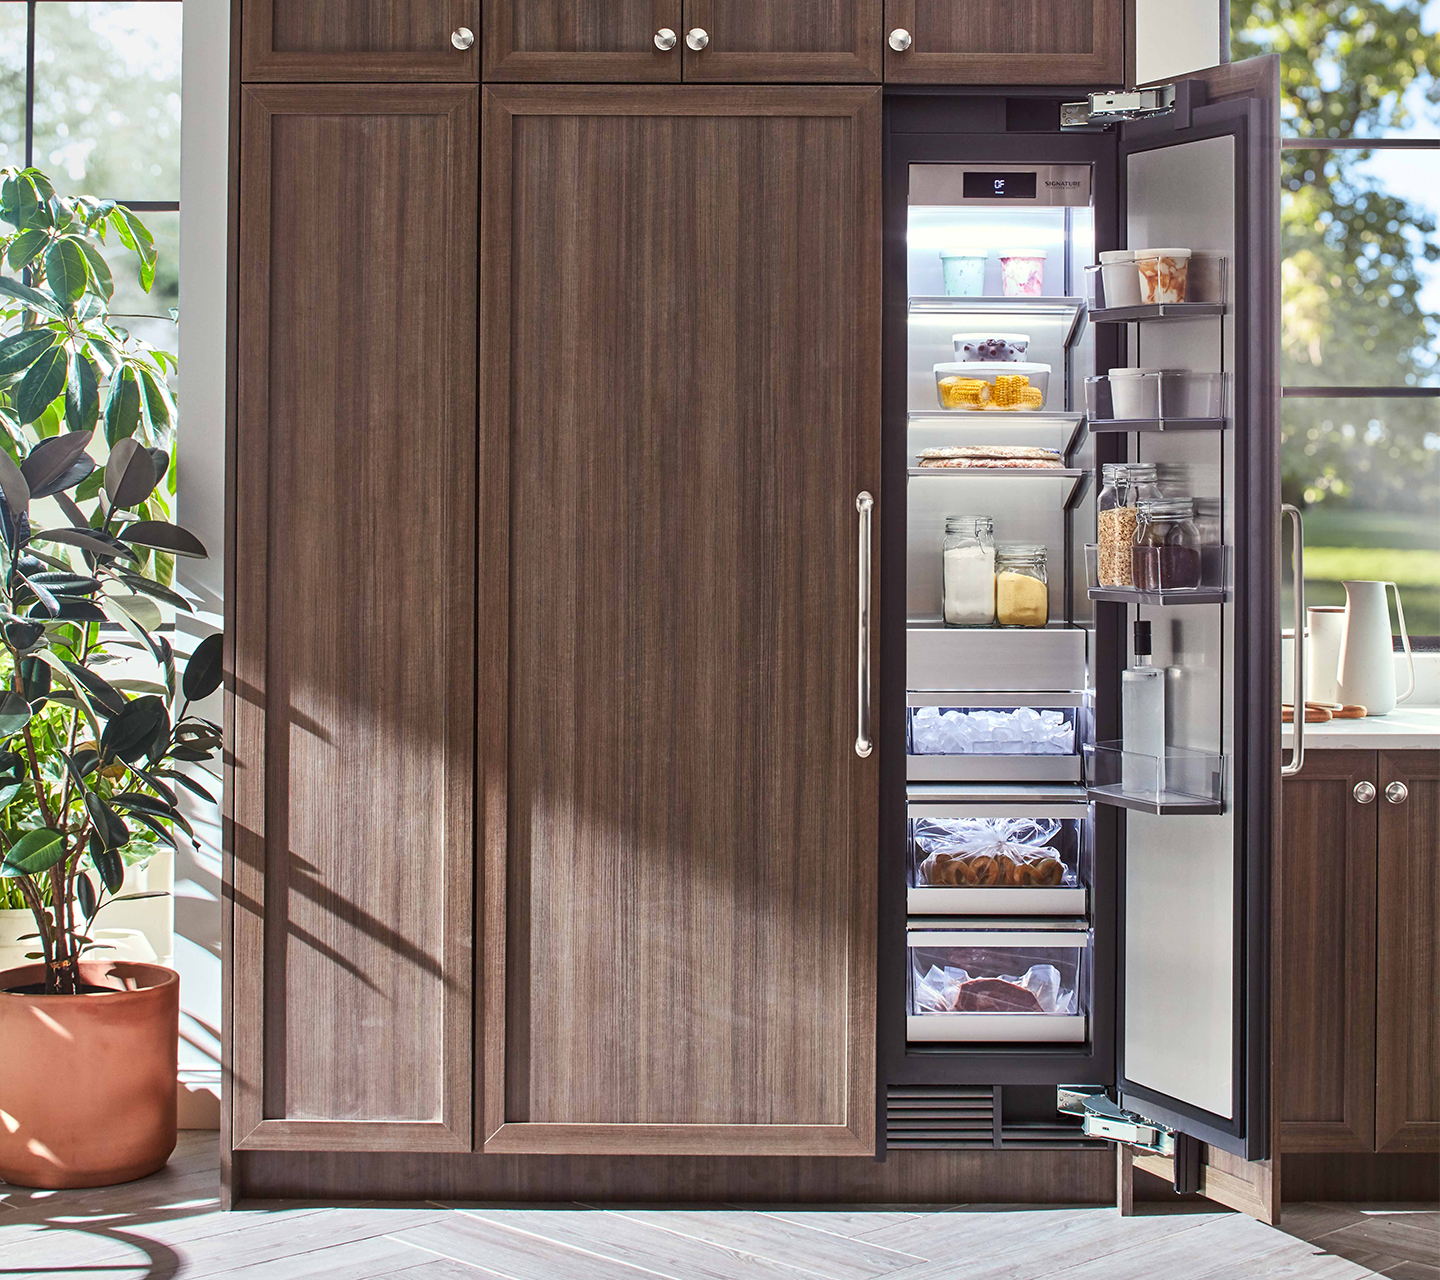 Kitchen Suite: Built-in Refrigerators, Panel Ready, Side By Side, French